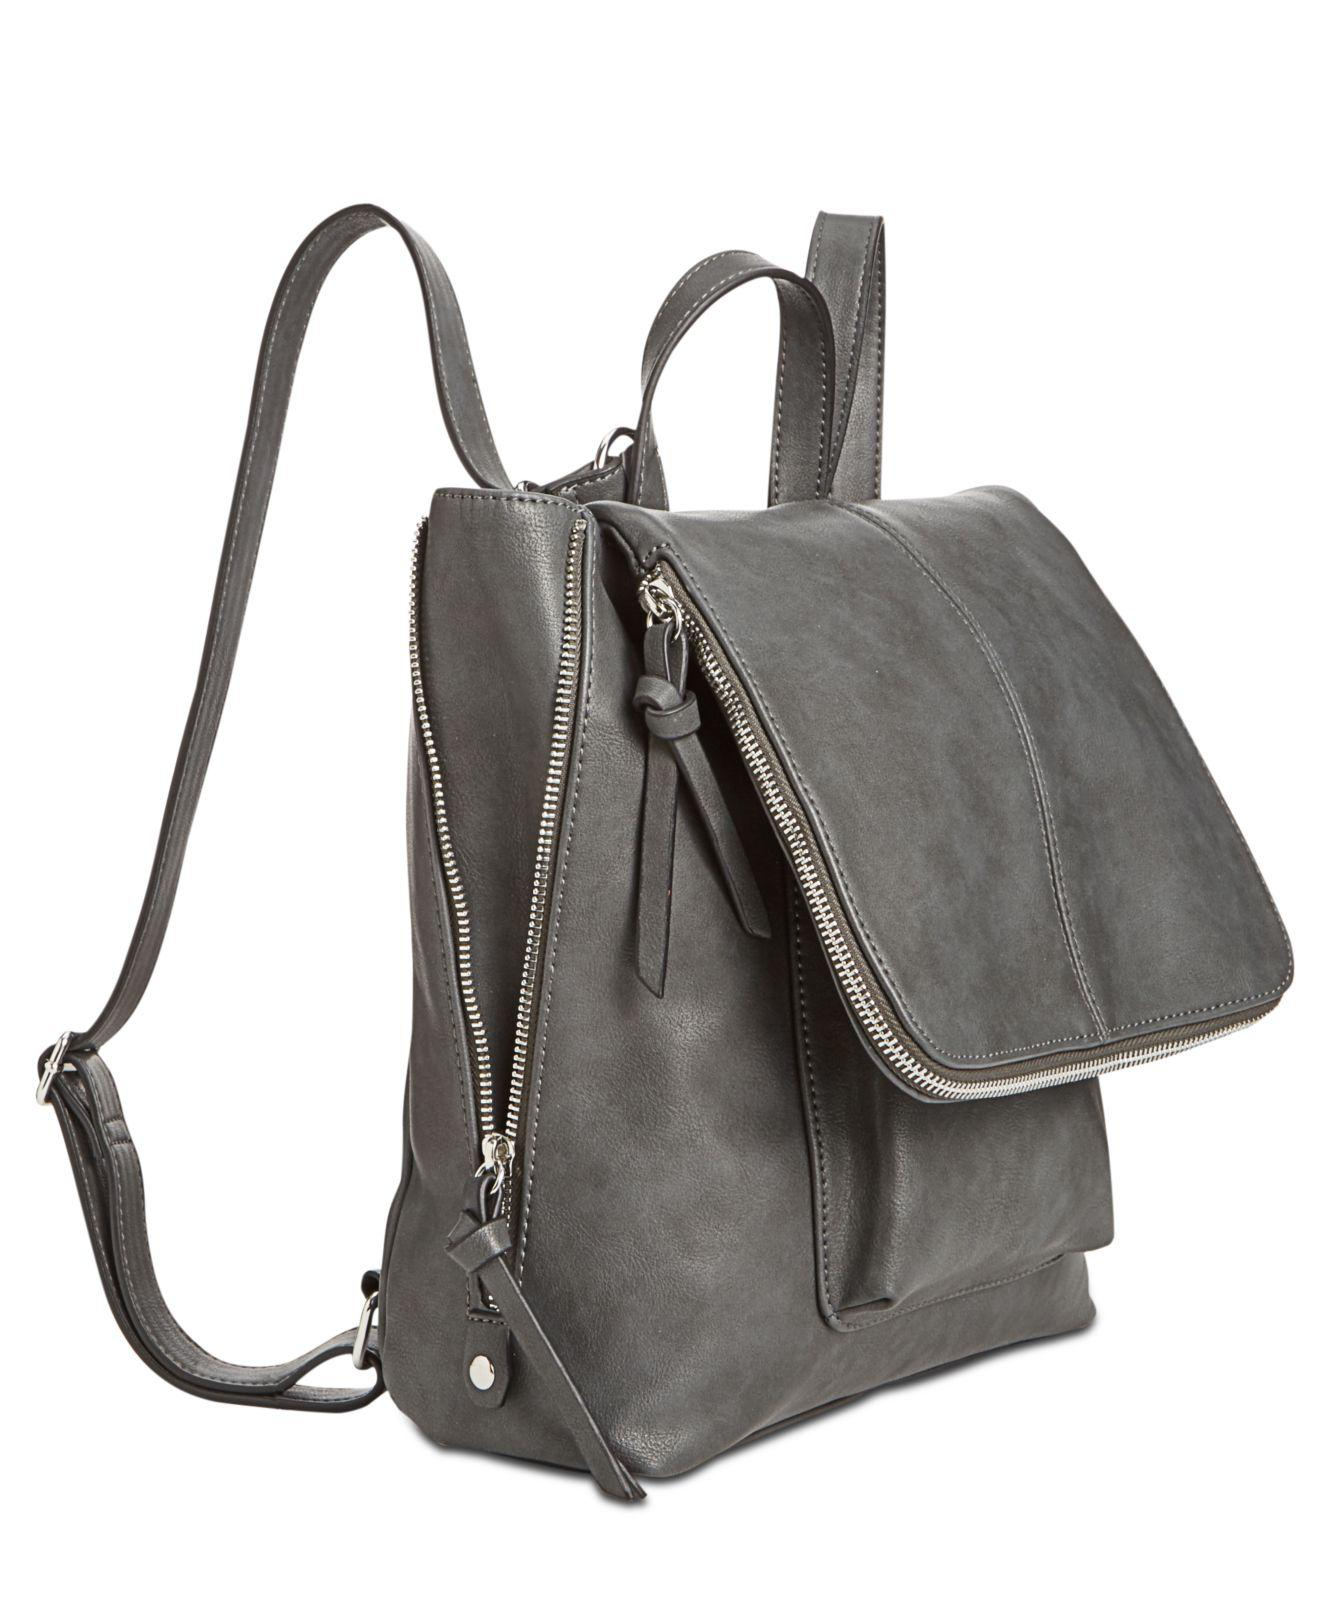 9eaa5ea19c INC International Concepts - Gray Elliah Medium Wrapped Backpack - Lyst.  View fullscreen